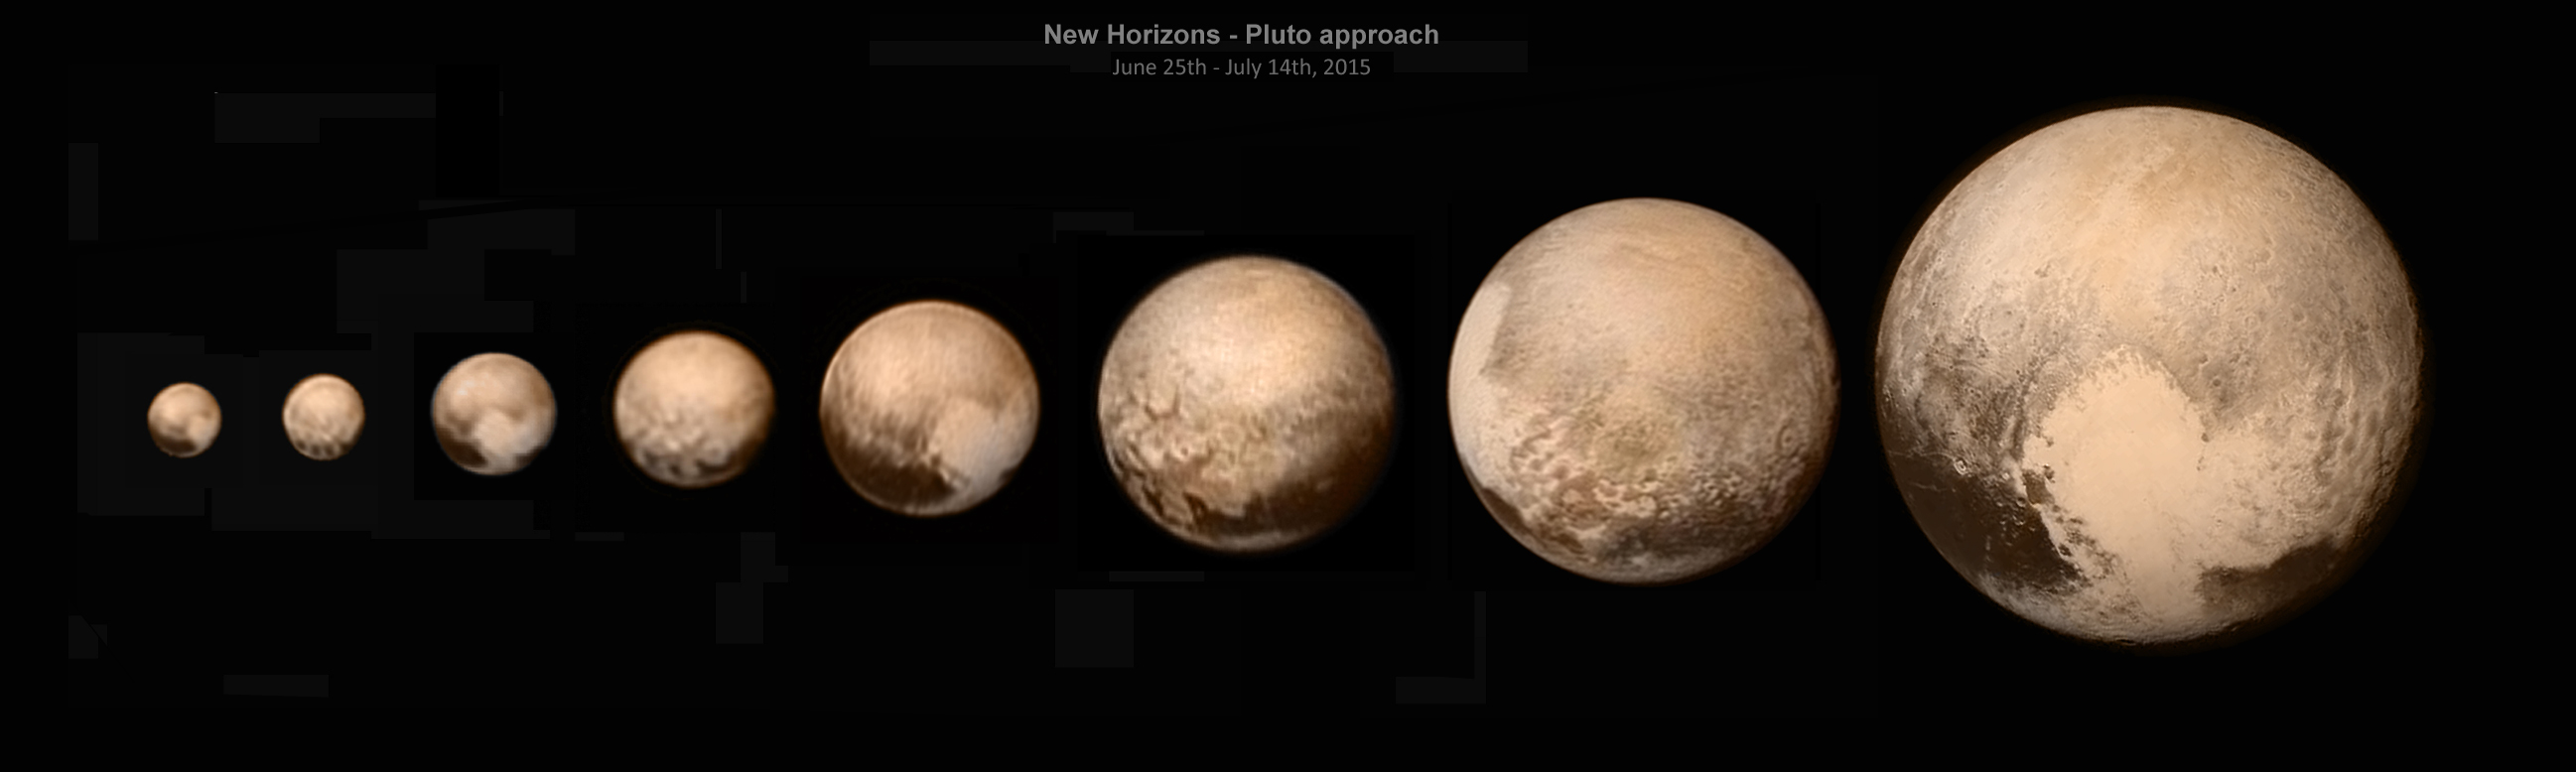 Kerberos Moon Of Plluto: Pluto's Moons Nix And Hydra Get Real / New Pluto Mountain